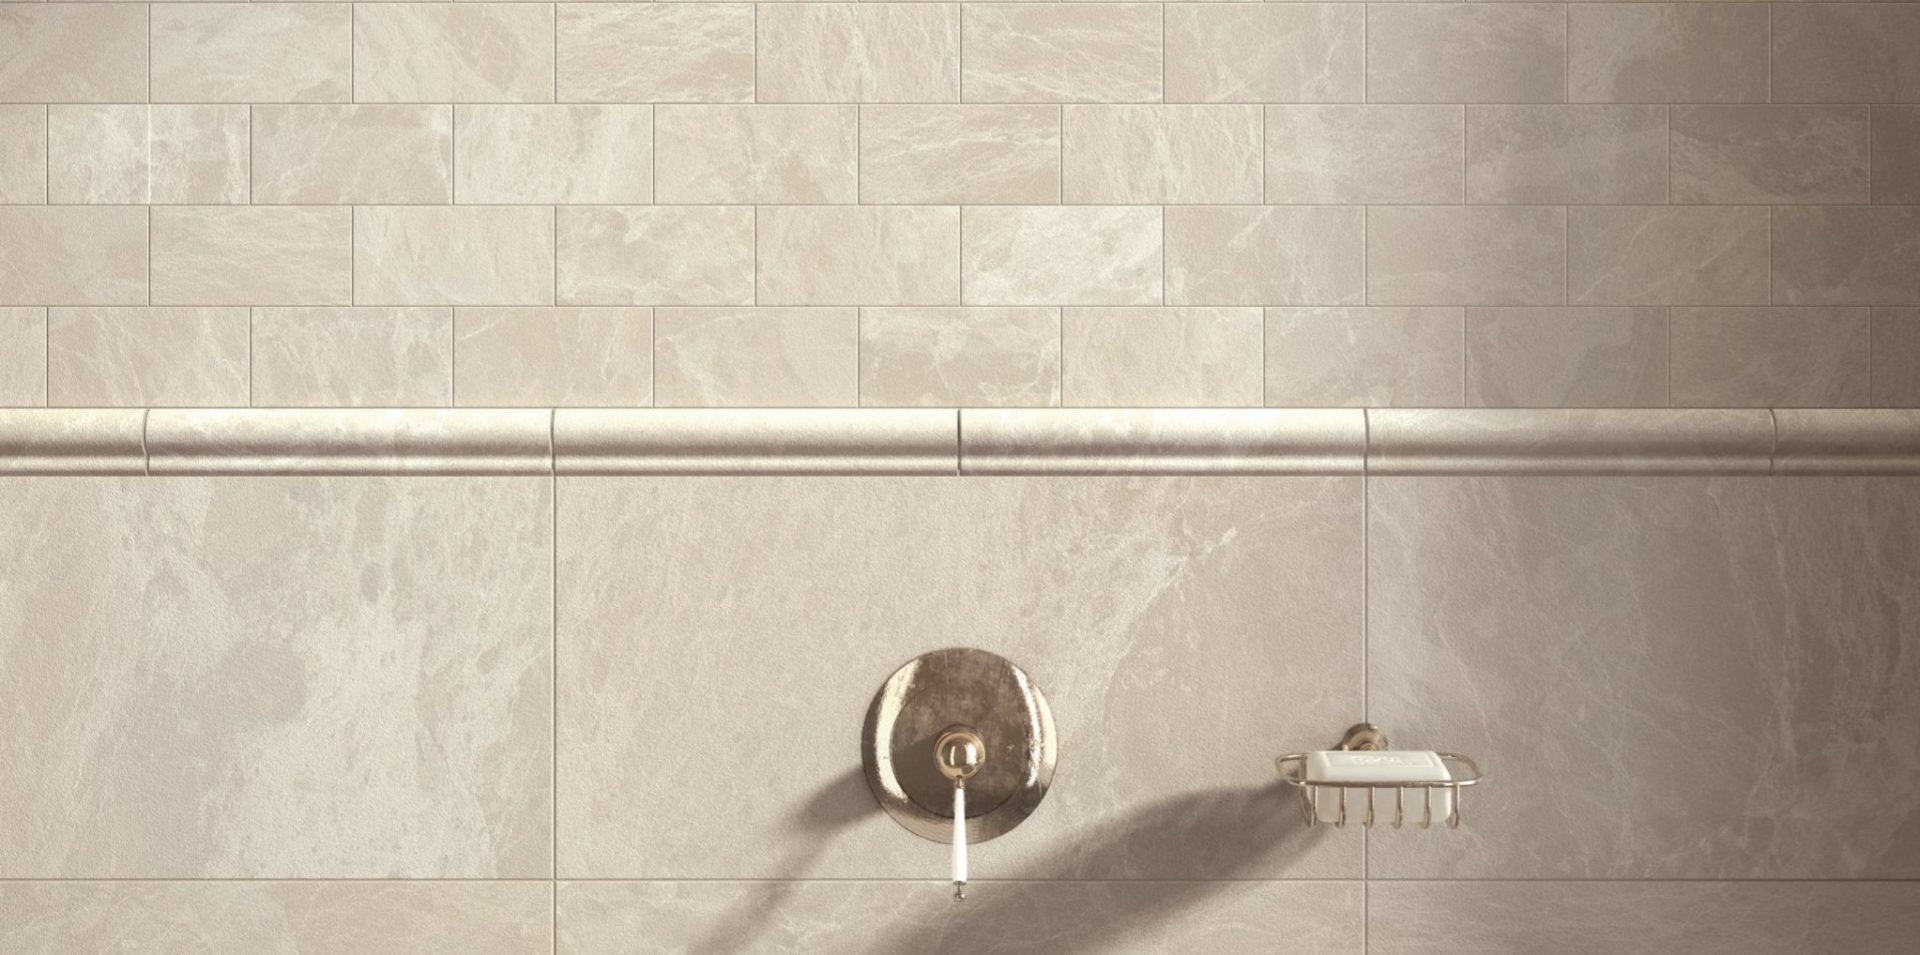 Bathroom Bullnose Tile Trim Image Of